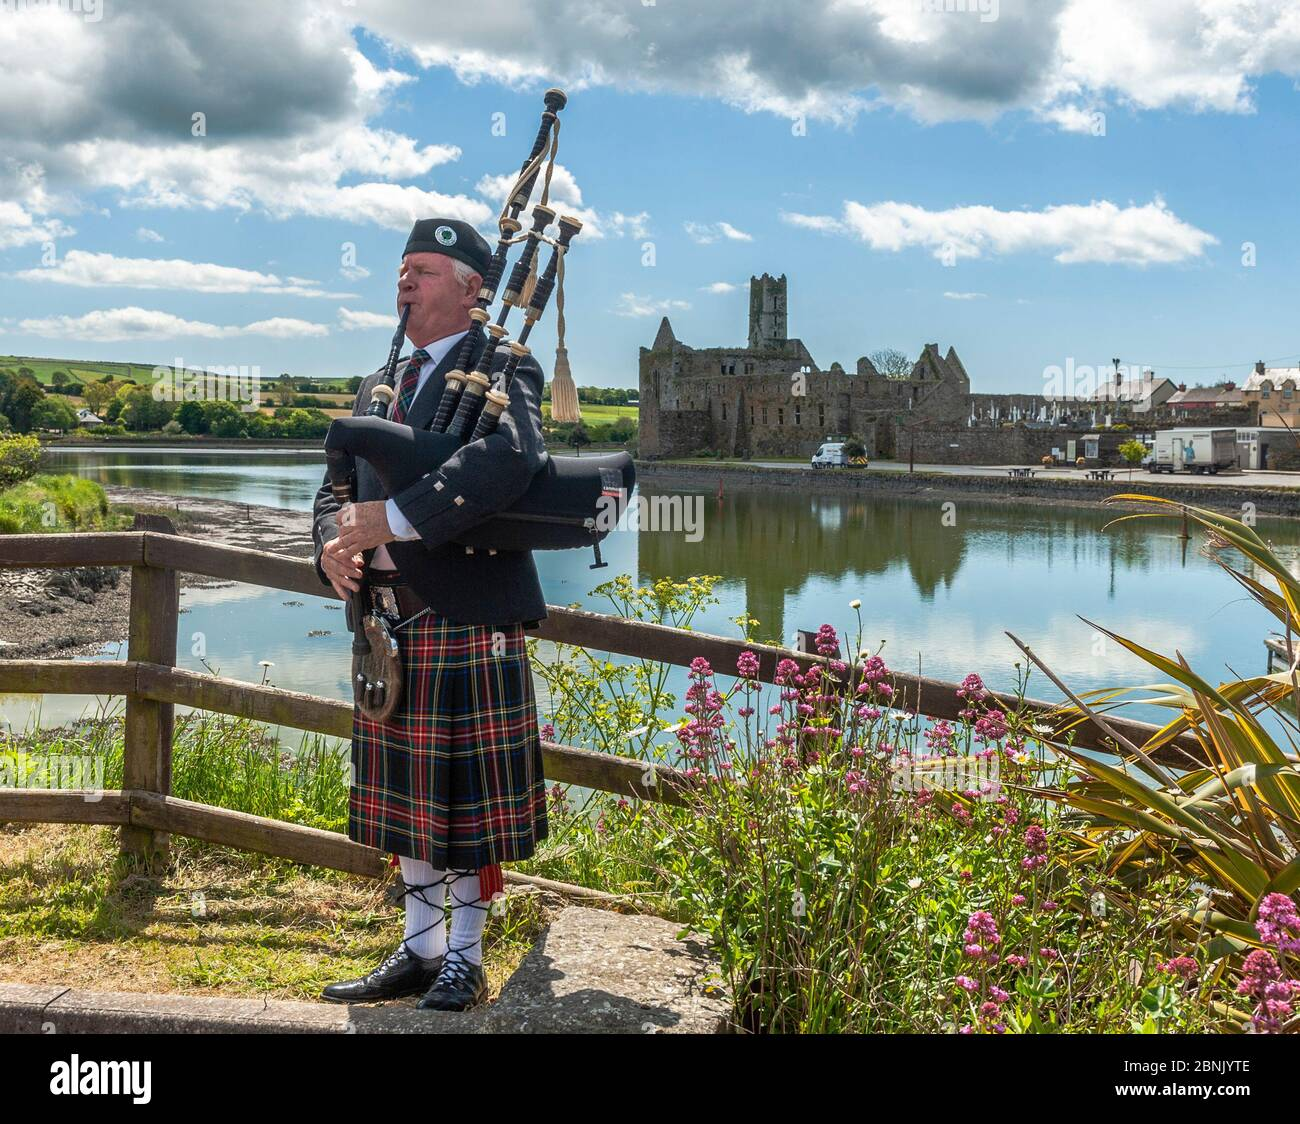 timoleague-west-cork-ireland-15th-may-2020-local-man-michael-heaney-from-timoleague-plays-the-bagpipes-with-timoleague-abbey-in-the-background-mr-heaney-was-filmed-playing-the-pipes-as-part-of-arigideen-rangers-gaa-clubs-fundraising-initiative-the-gaa-club-is-raising-money-for-clonakilty-community-hospital-pieta-house-and-timoleague-parish-church-credit-ag-newsalamy-live-news-2BNJYTE.jpg